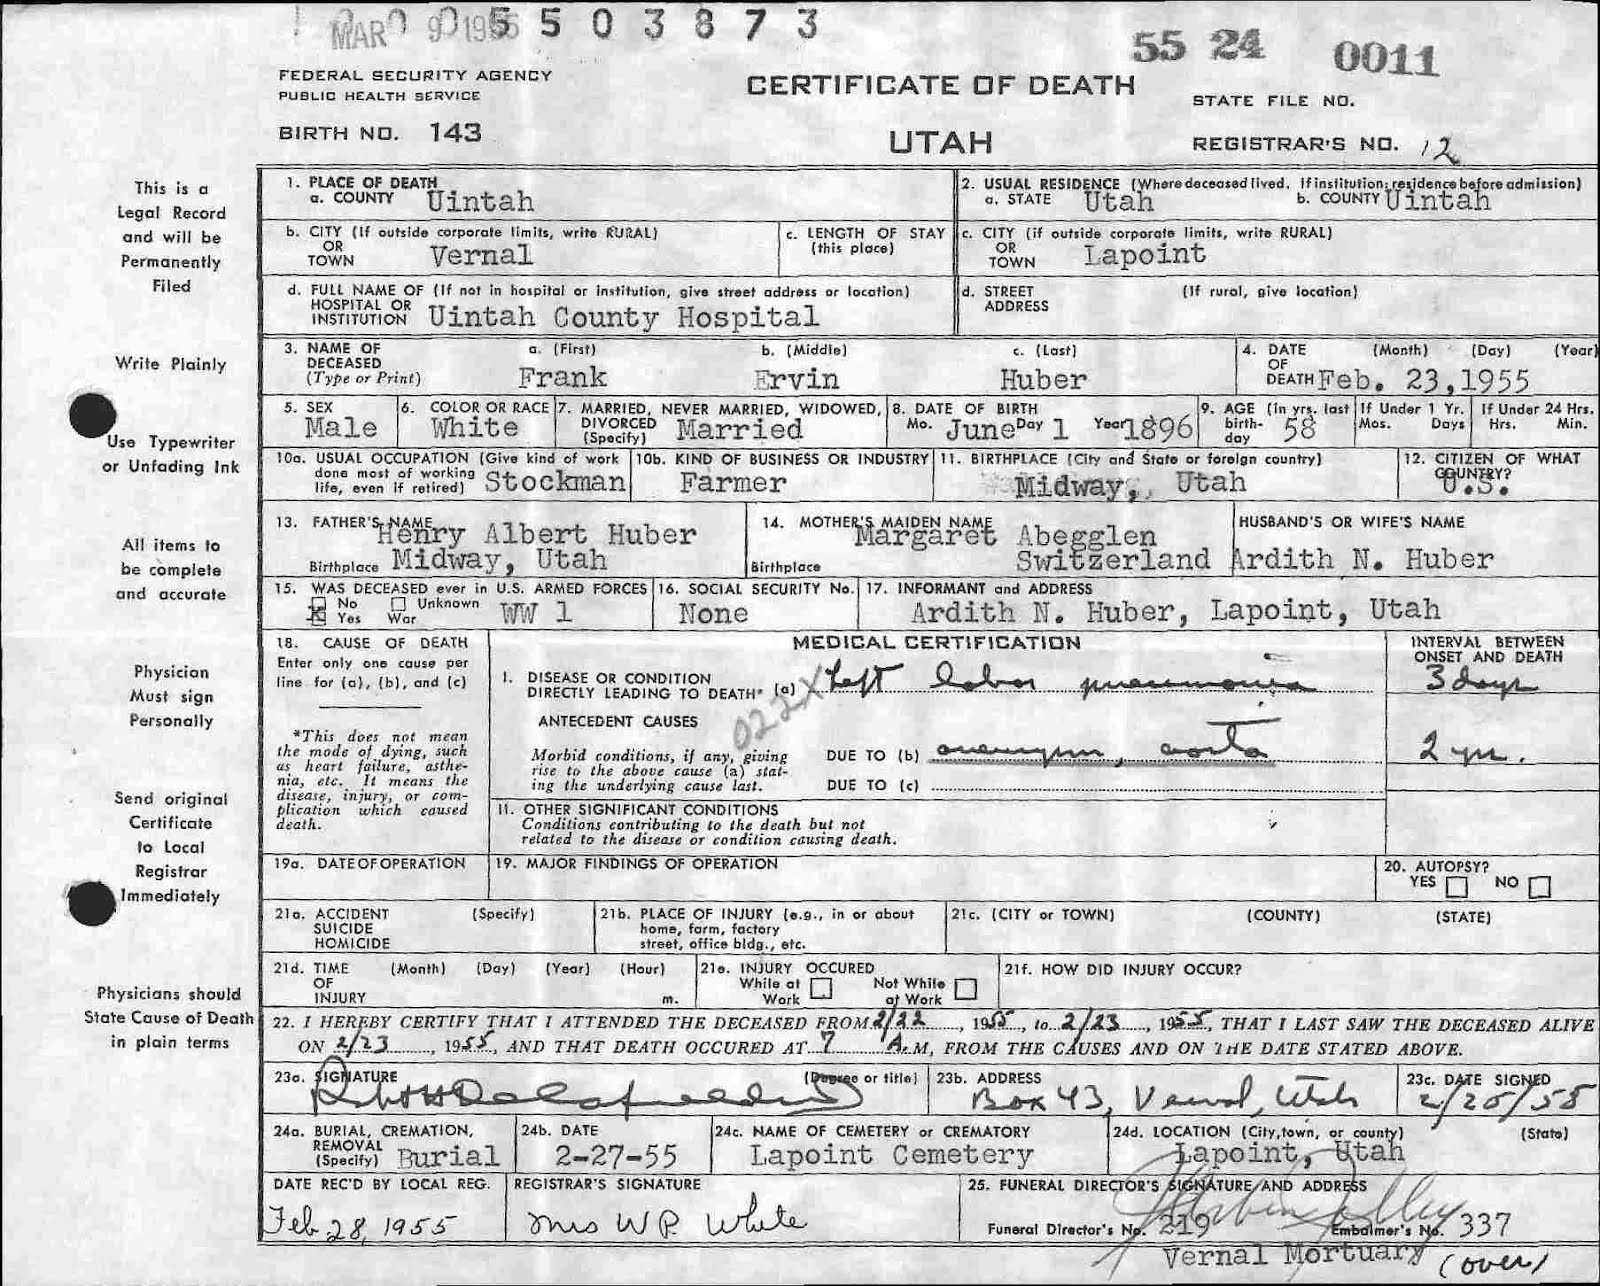 Leroy and vera huber death info on frank huber death certificate 1betcityfo Choice Image